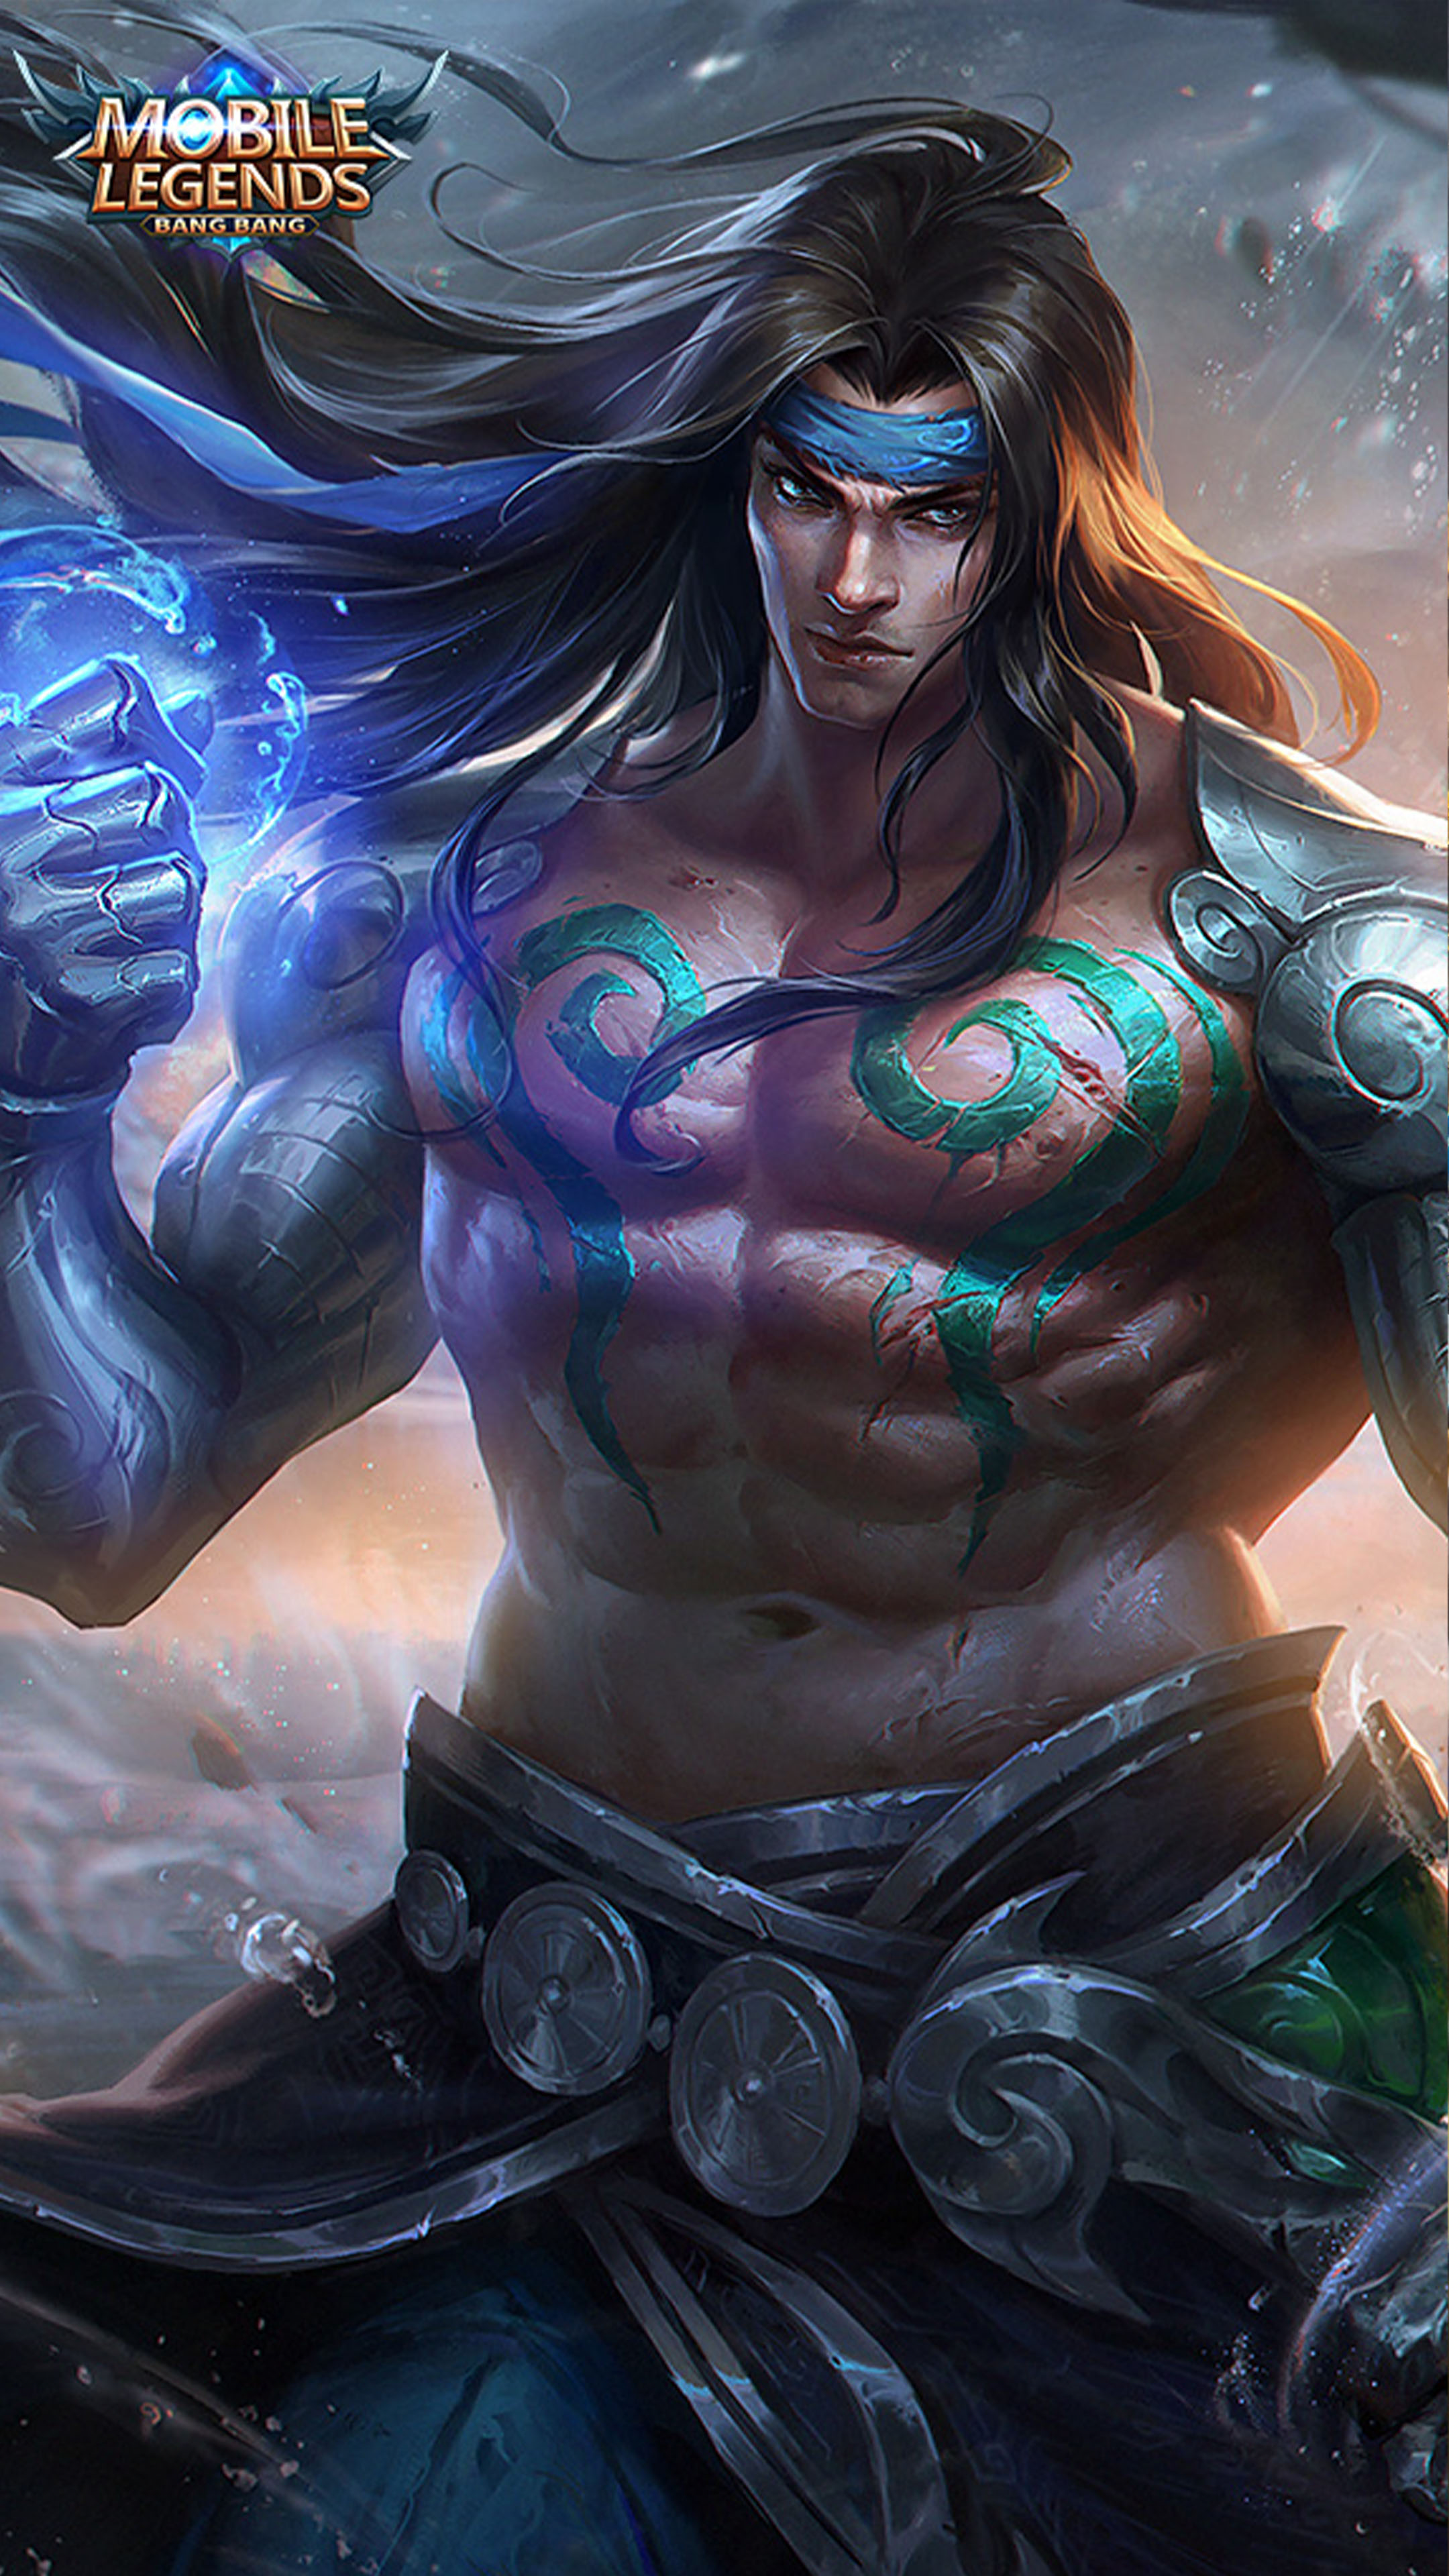 Badang Mobile Legends 4k Ultra Hd Mobile Wallpaper